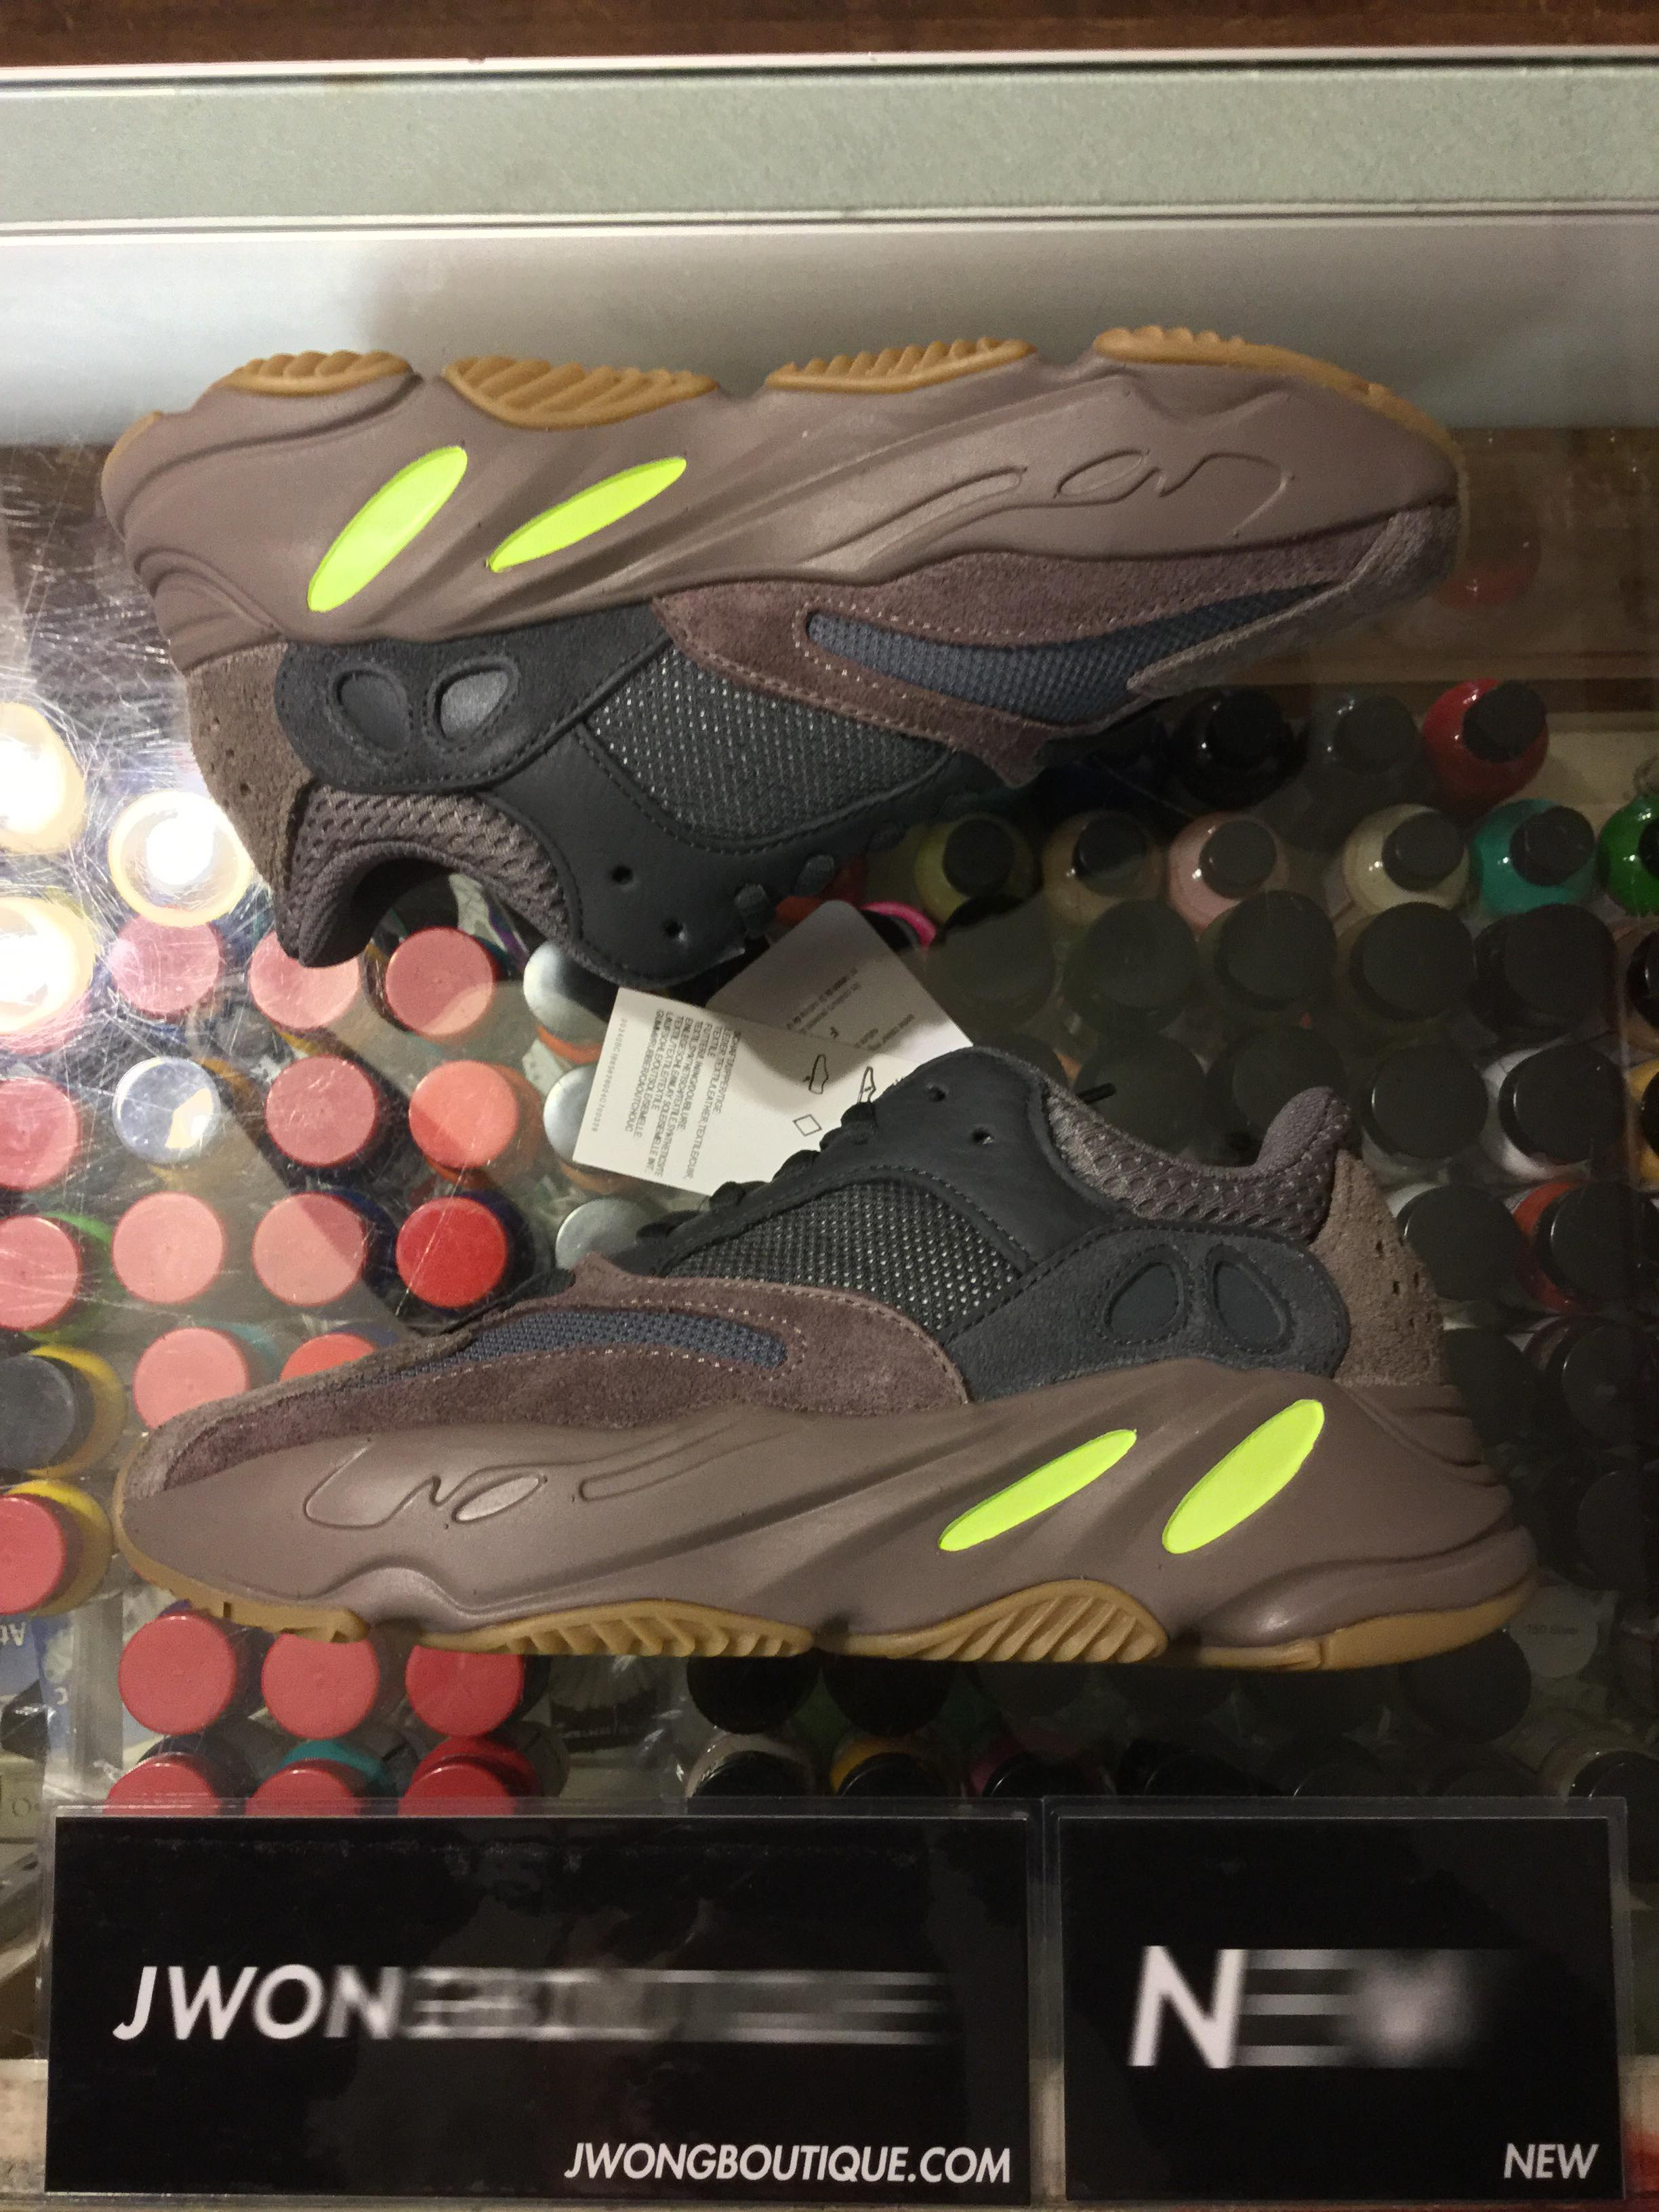 save off 54bf8 95d09 2018 Adidas Yeezy Boost 700 Mauve Youth